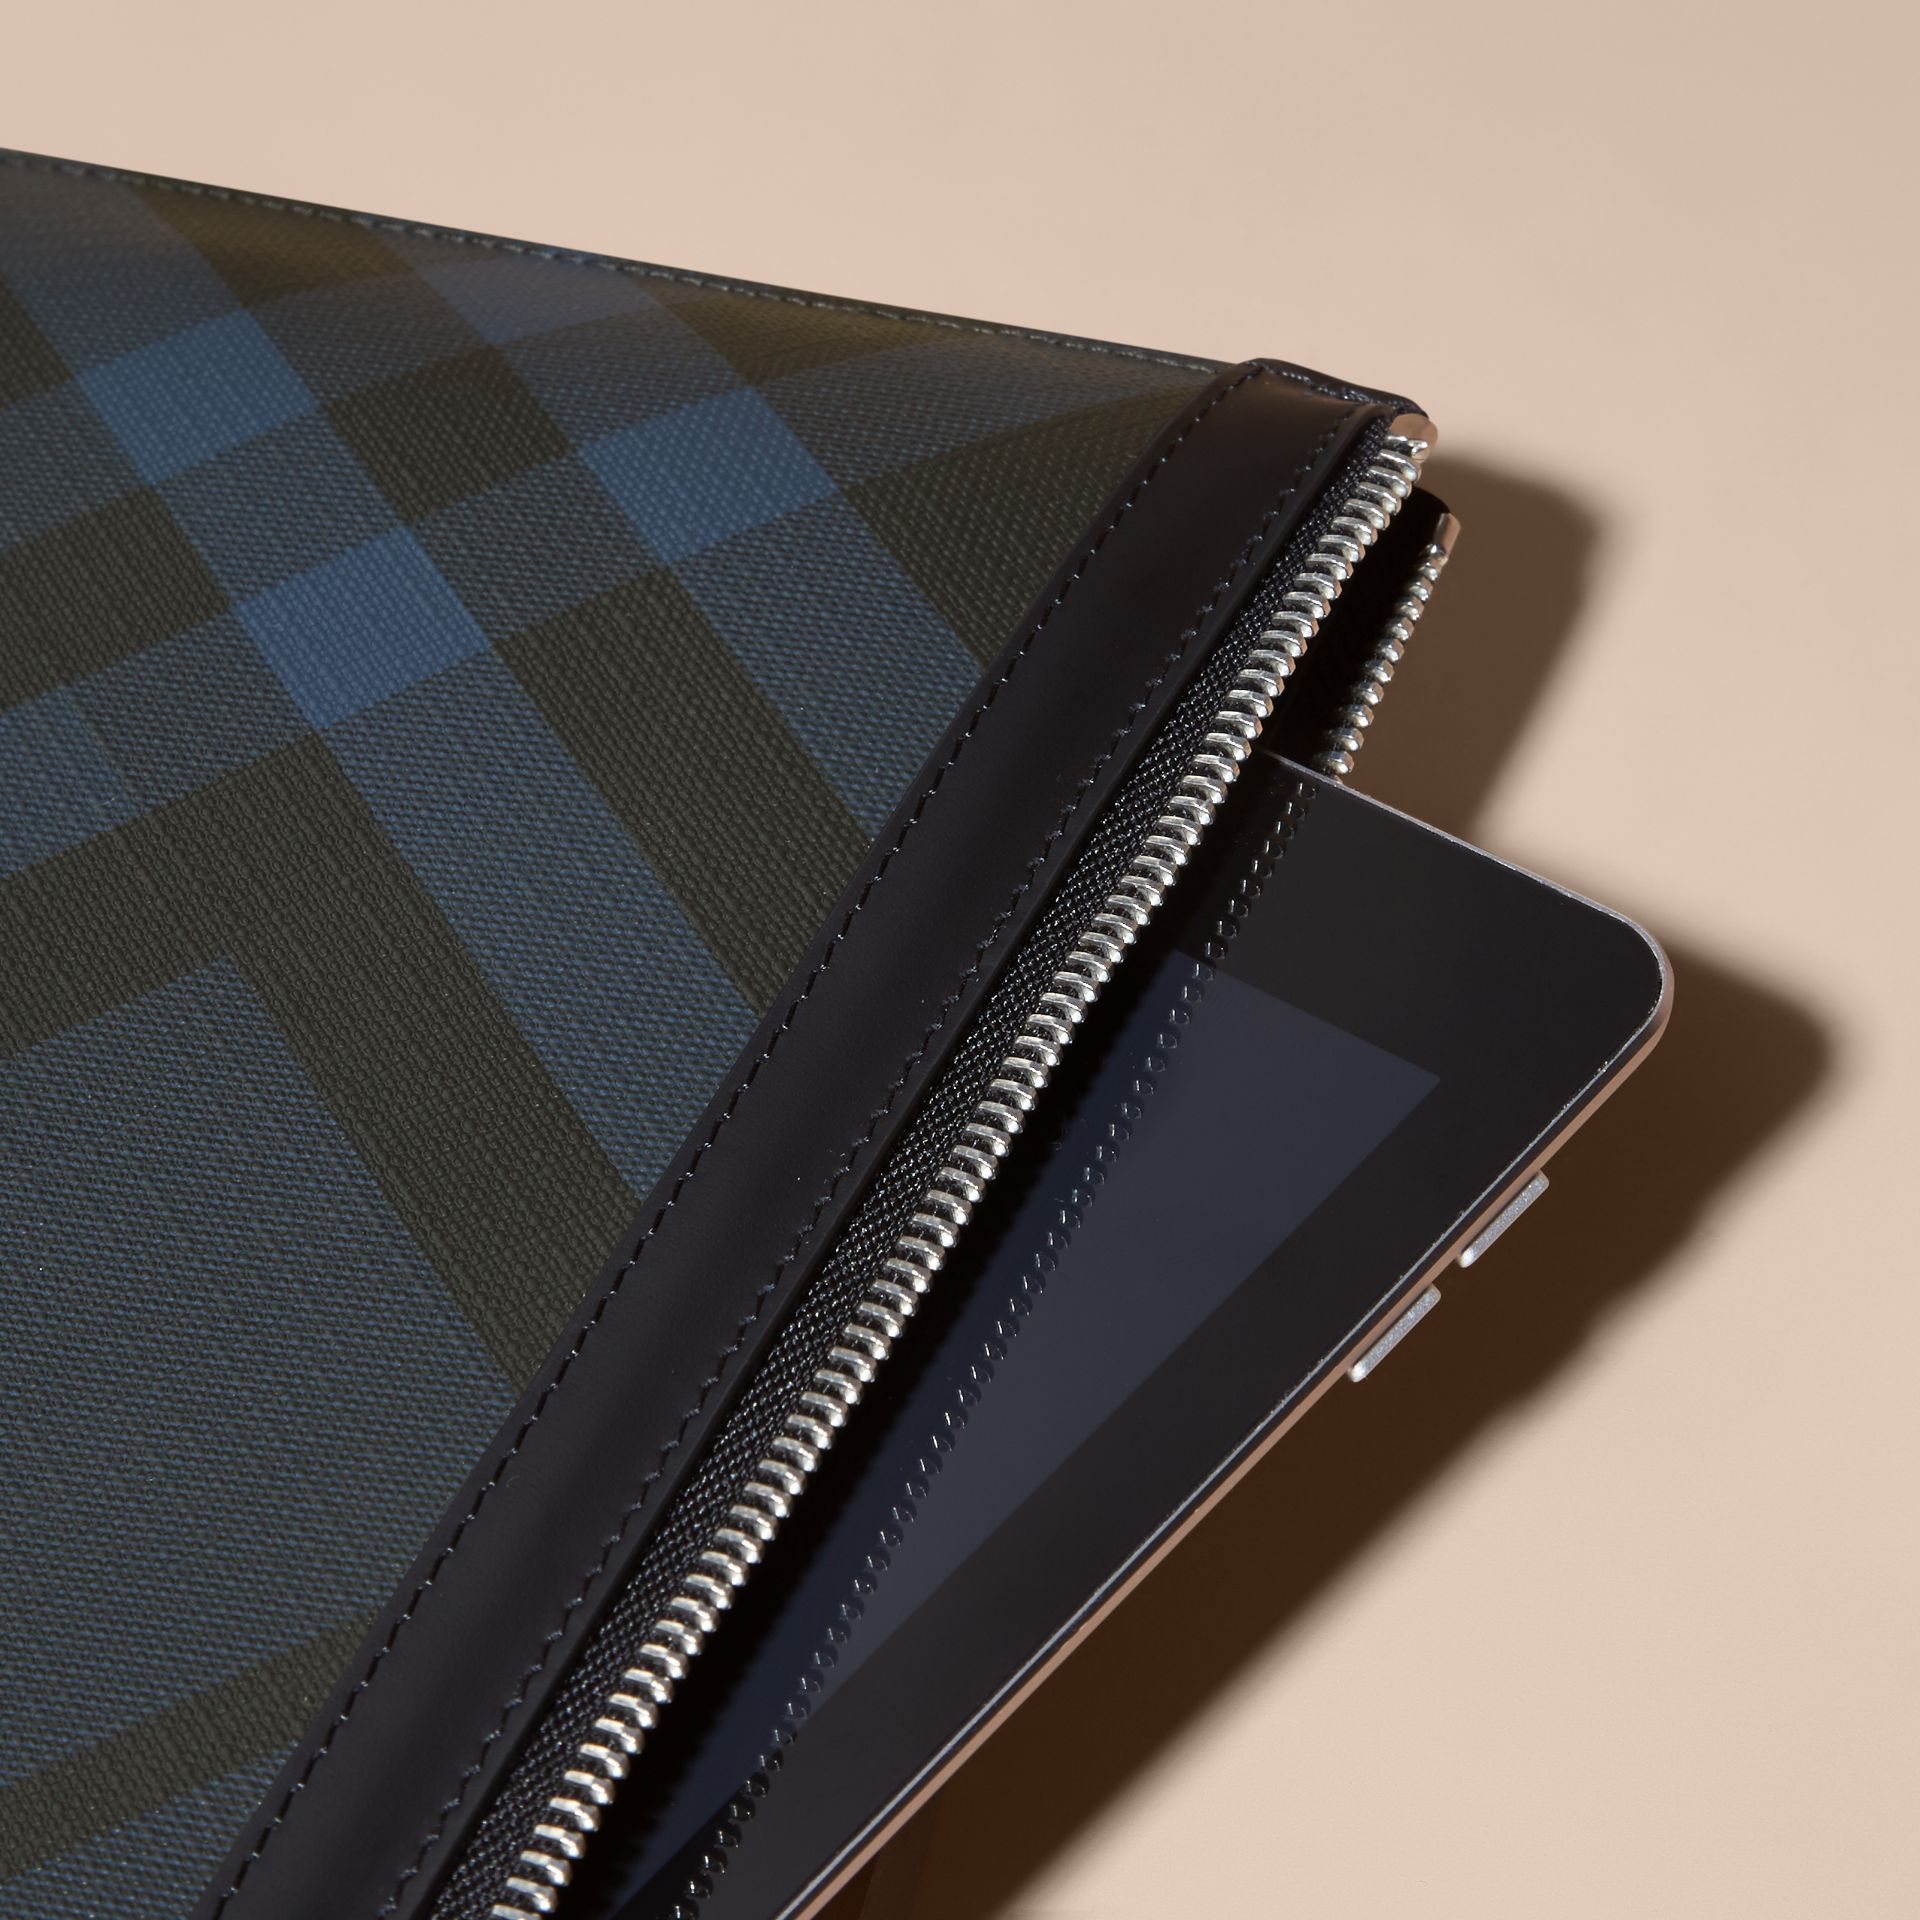 Zipped London Check Pouch in Navy/black - Men | Burberry - gallery image 2